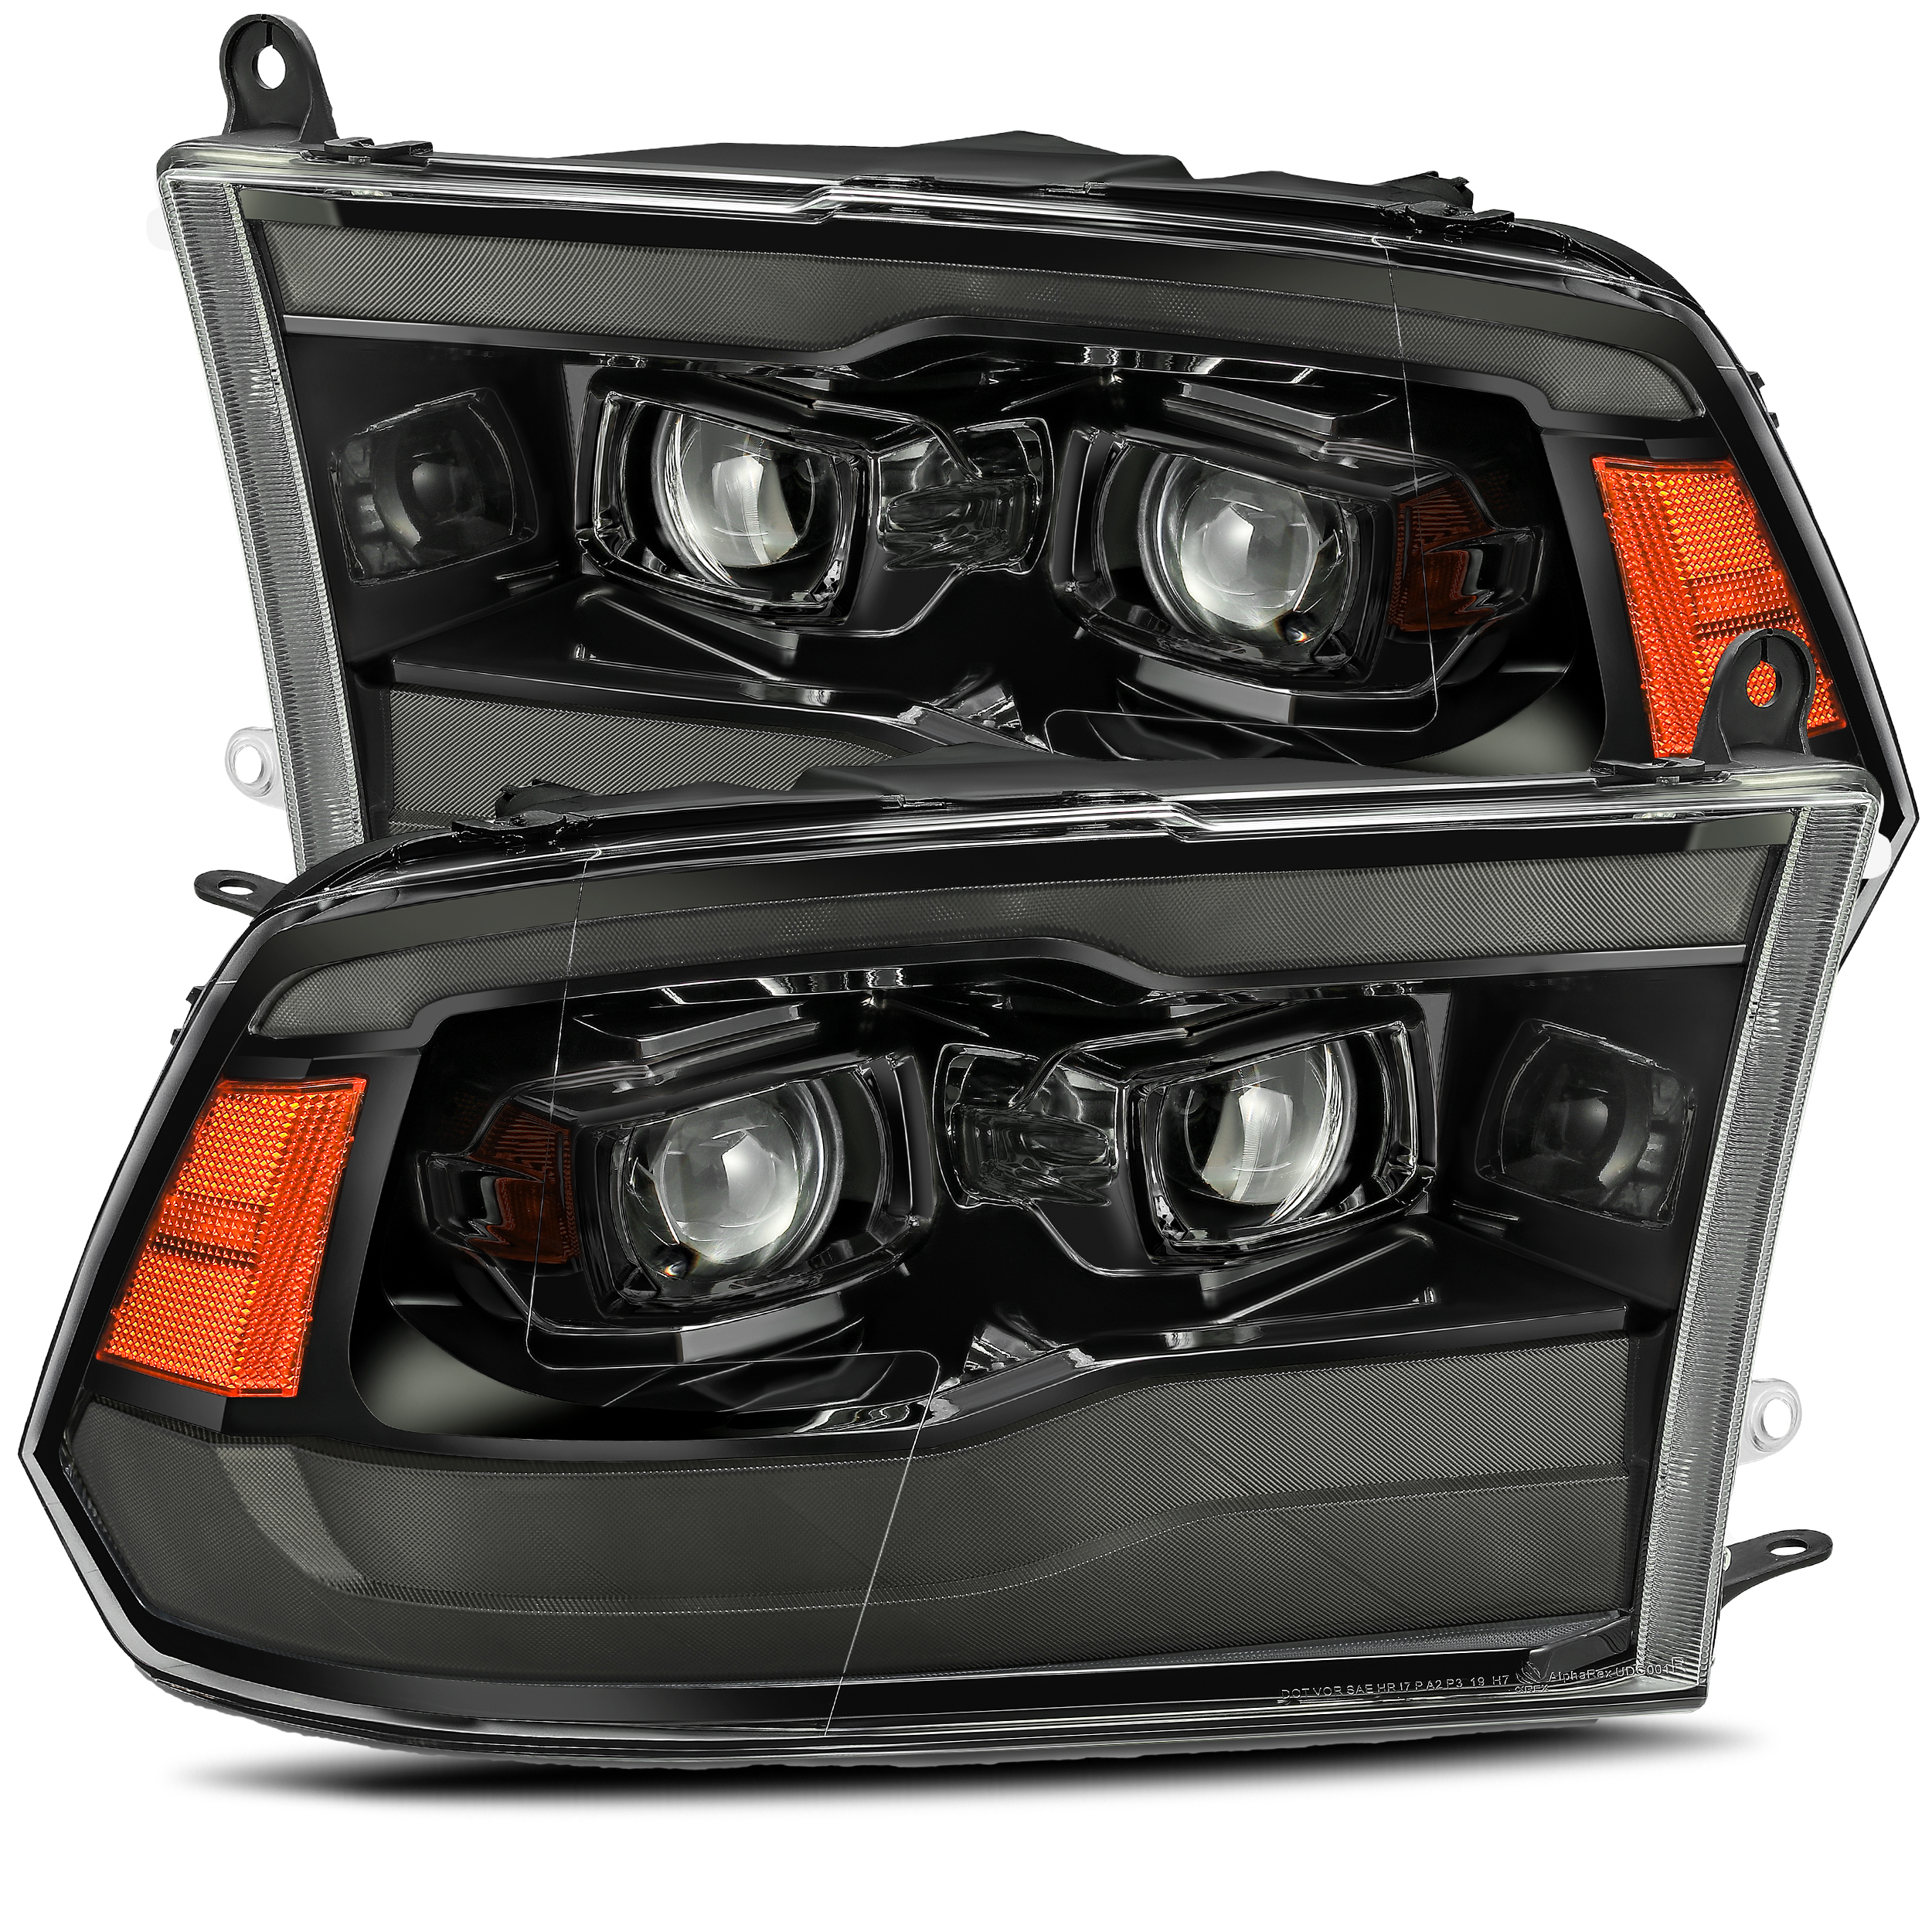 2009 2010 2011 2012 2013 2014 2015 2016 2017 2018 Ram Truck 1500 2500 3500 LUXX-Series Full LED Projector Headlights Alpha-Black